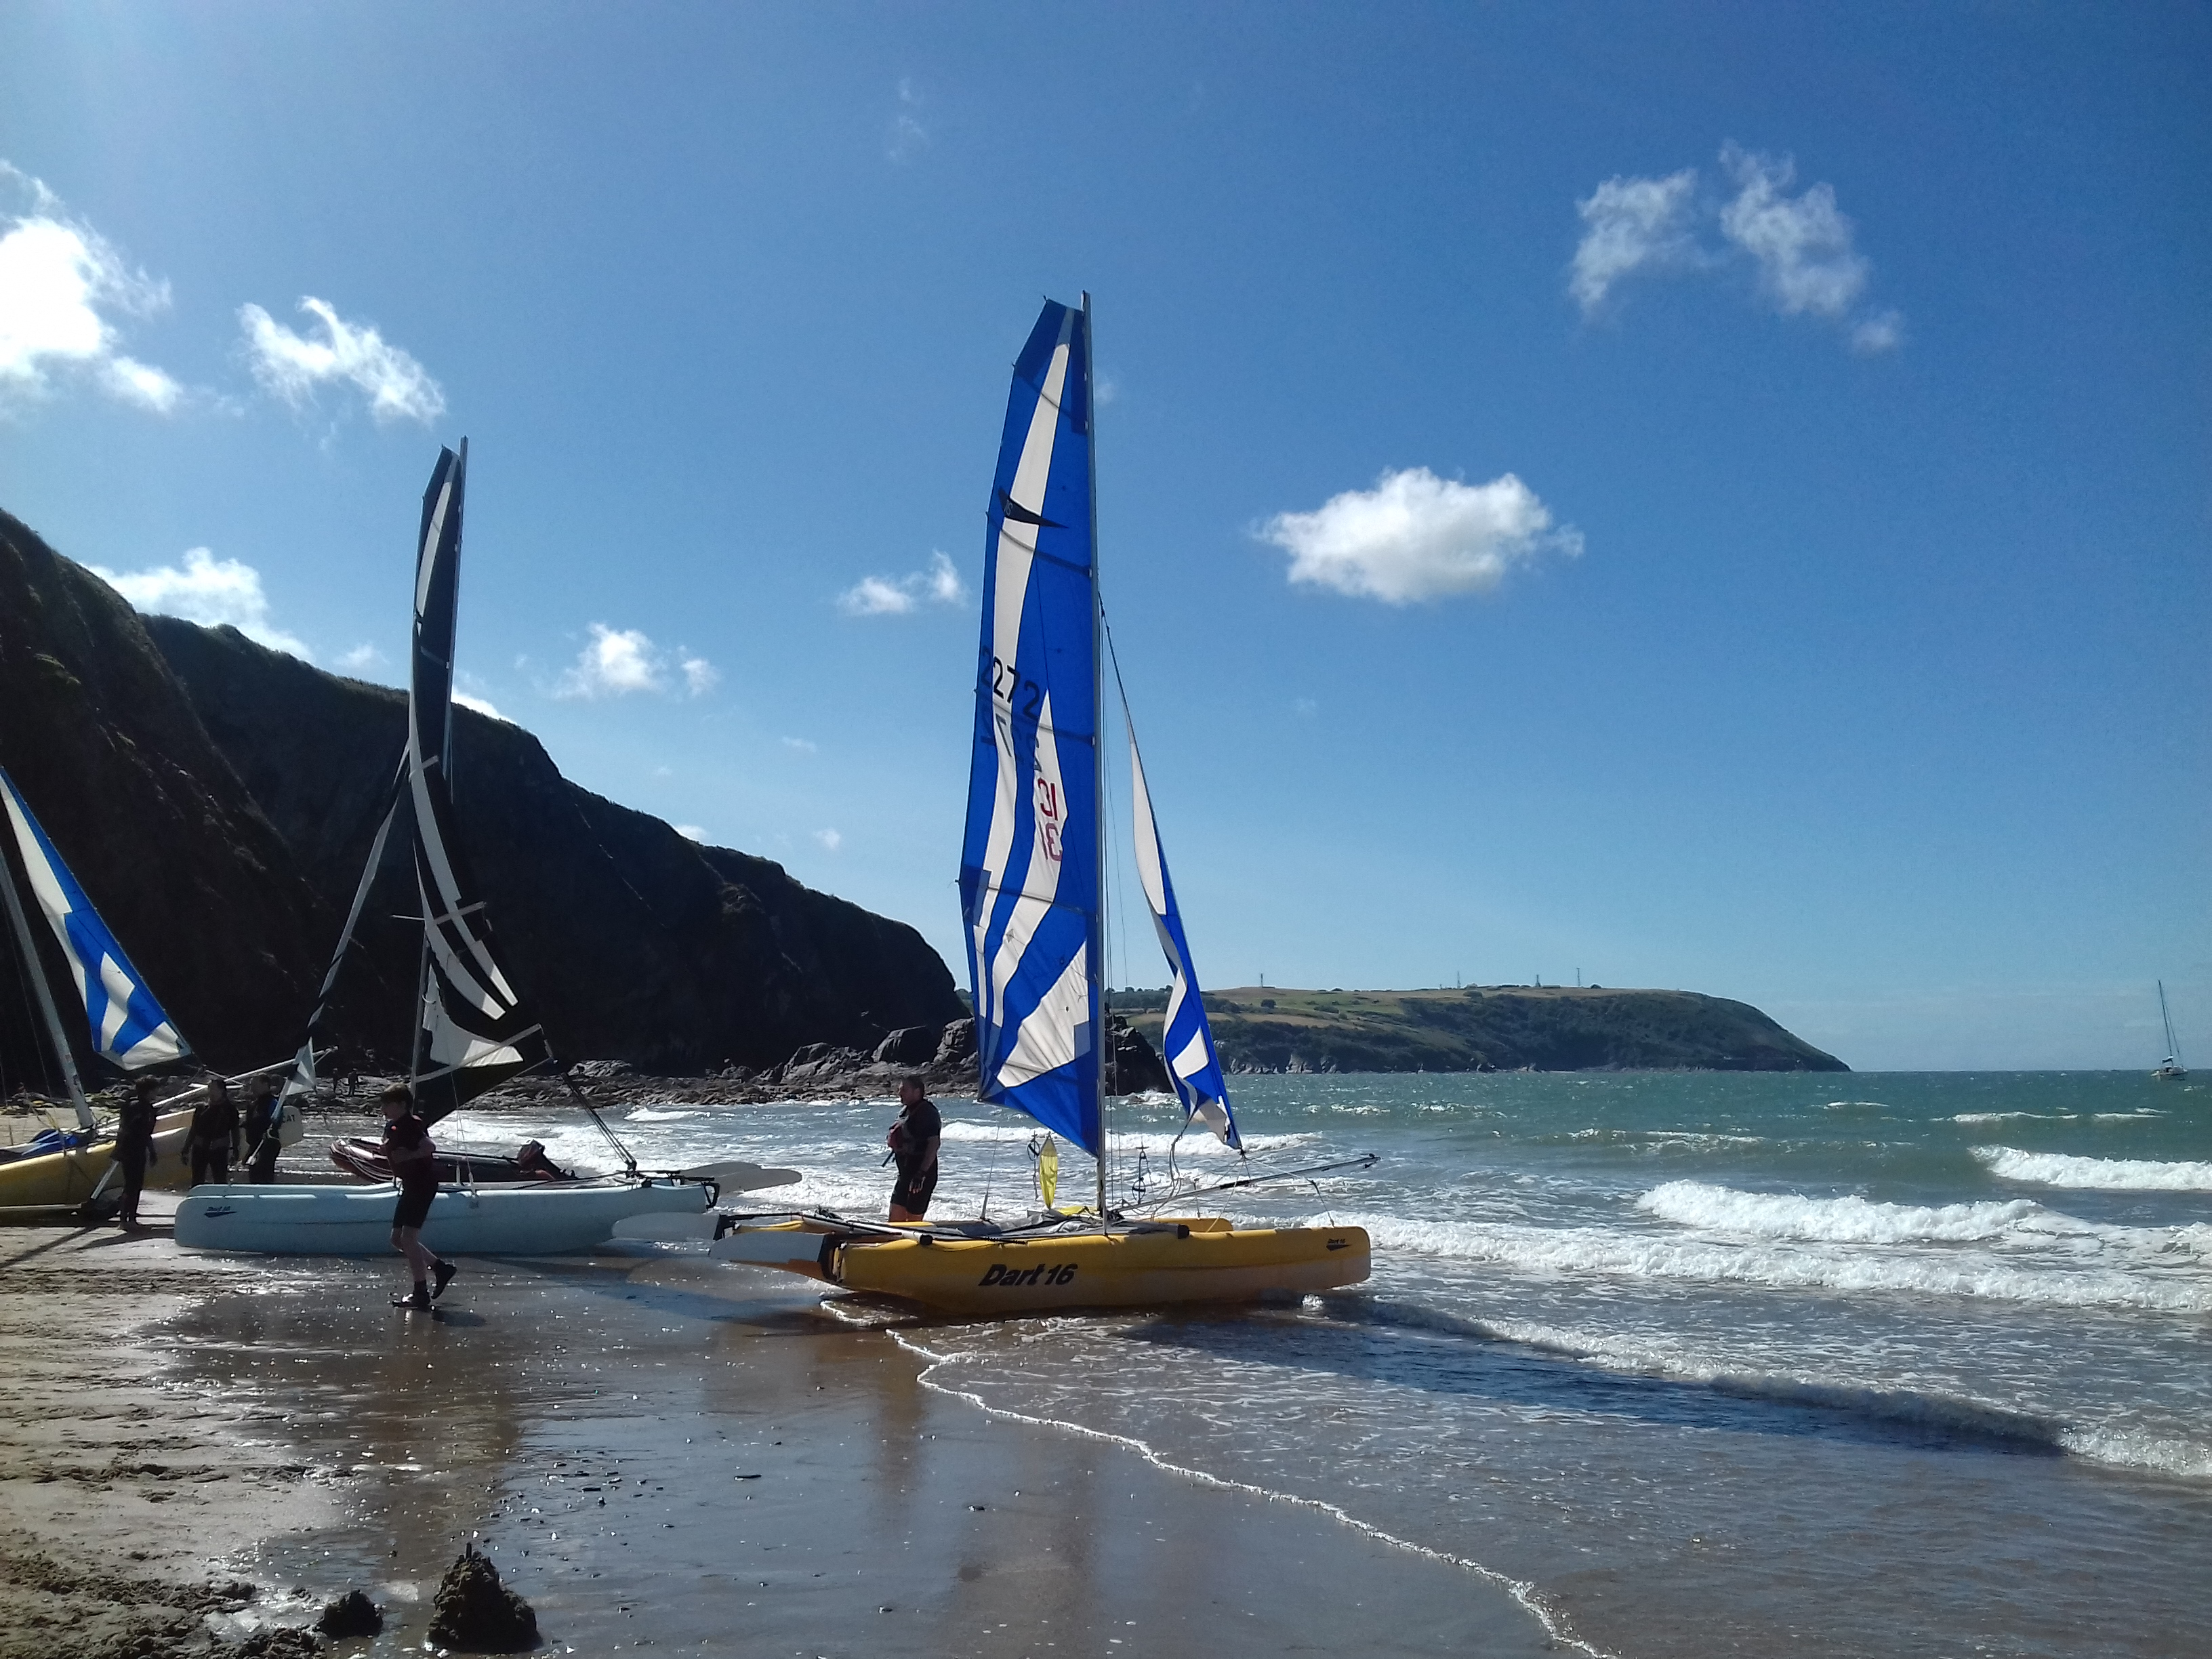 Sailing at Tresaith